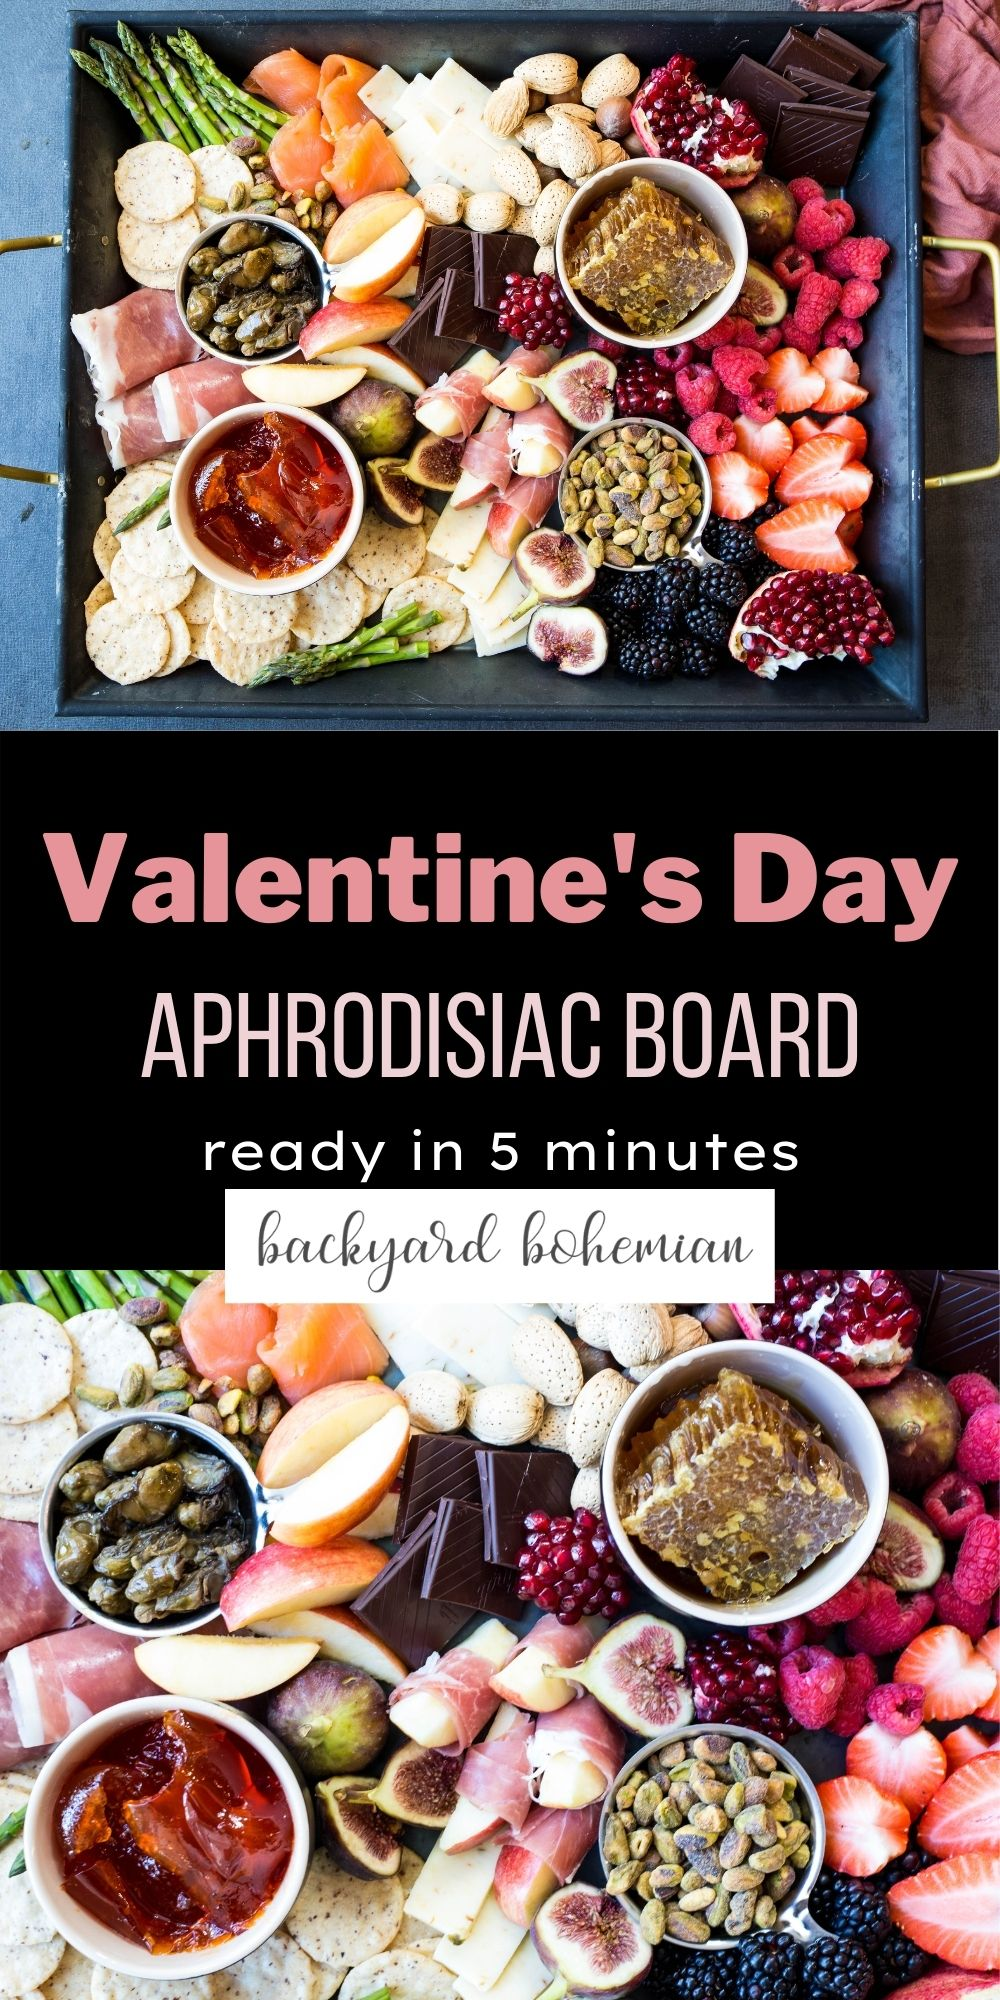 Aphrodisiac Charcuterie Board is made with salty and sweet ingredients and makes for a great at-home date idea! This fun charcuterie board is ready in minutes and is loaded with all the best ingredients! via @foodhussy